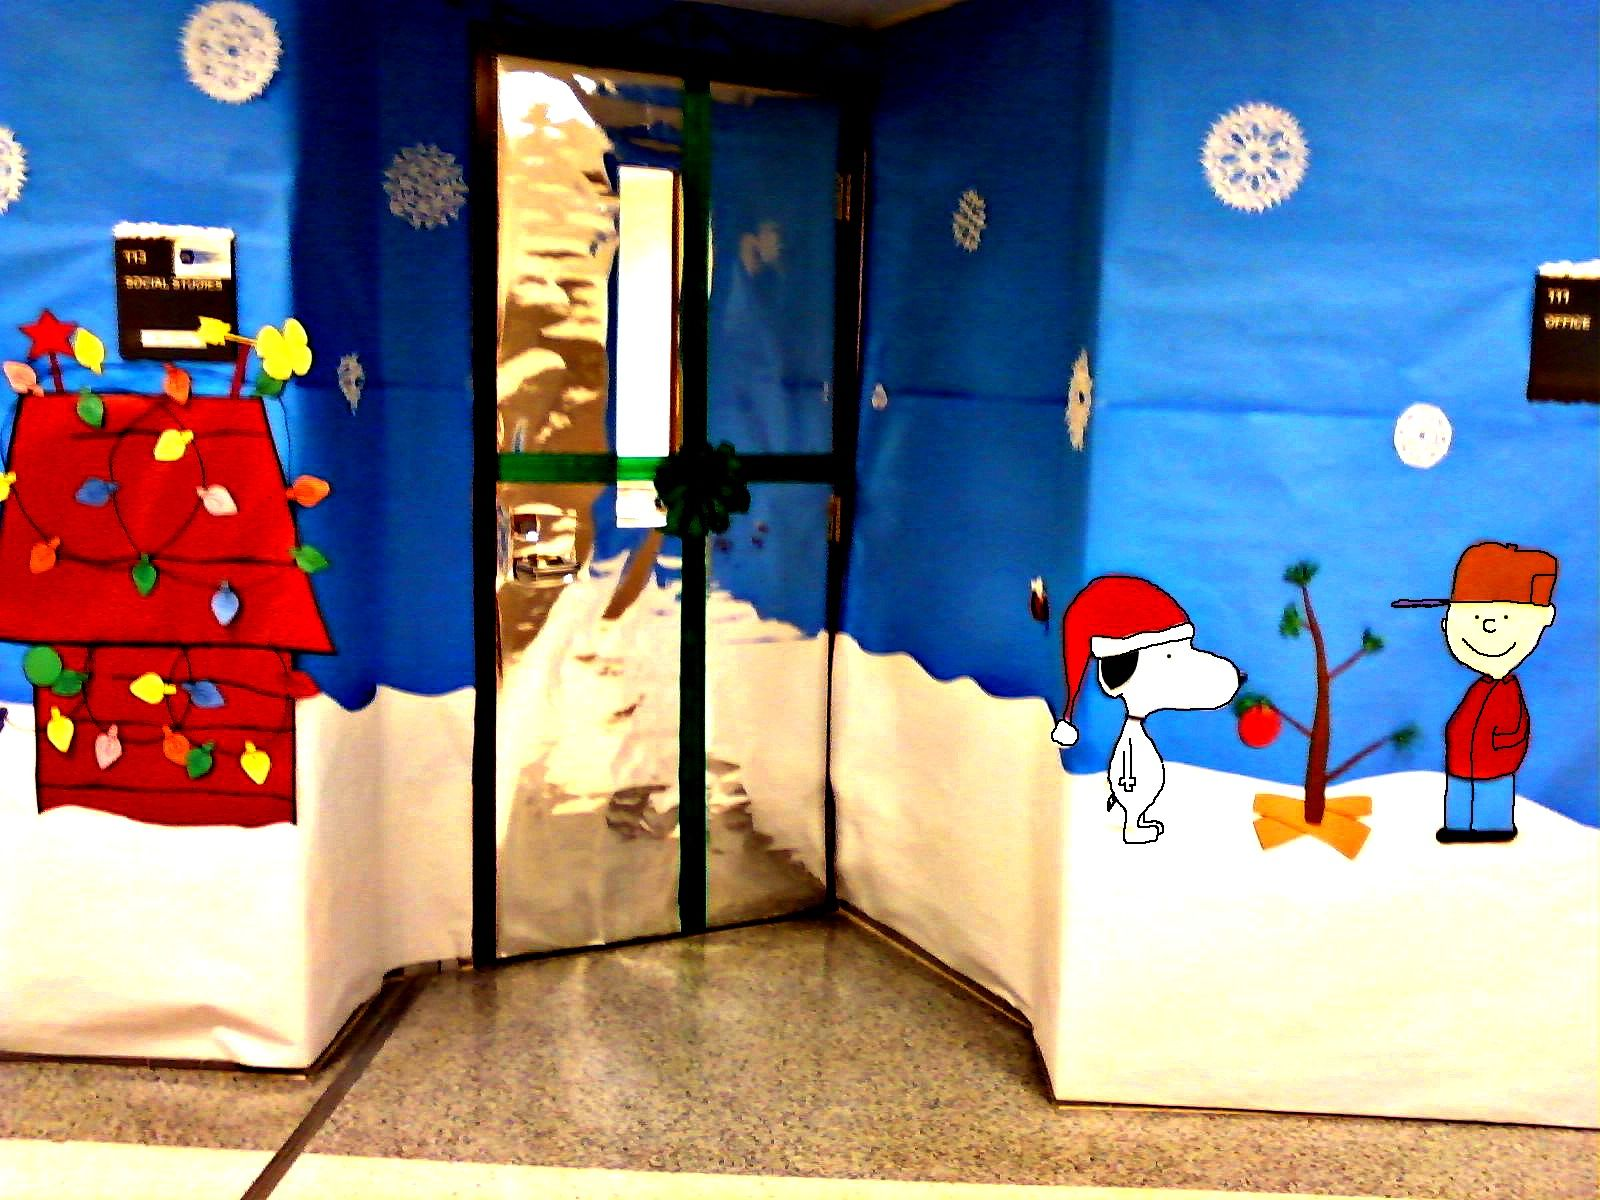 Christmas office decorating contest - Christmas Door Decorating Contest